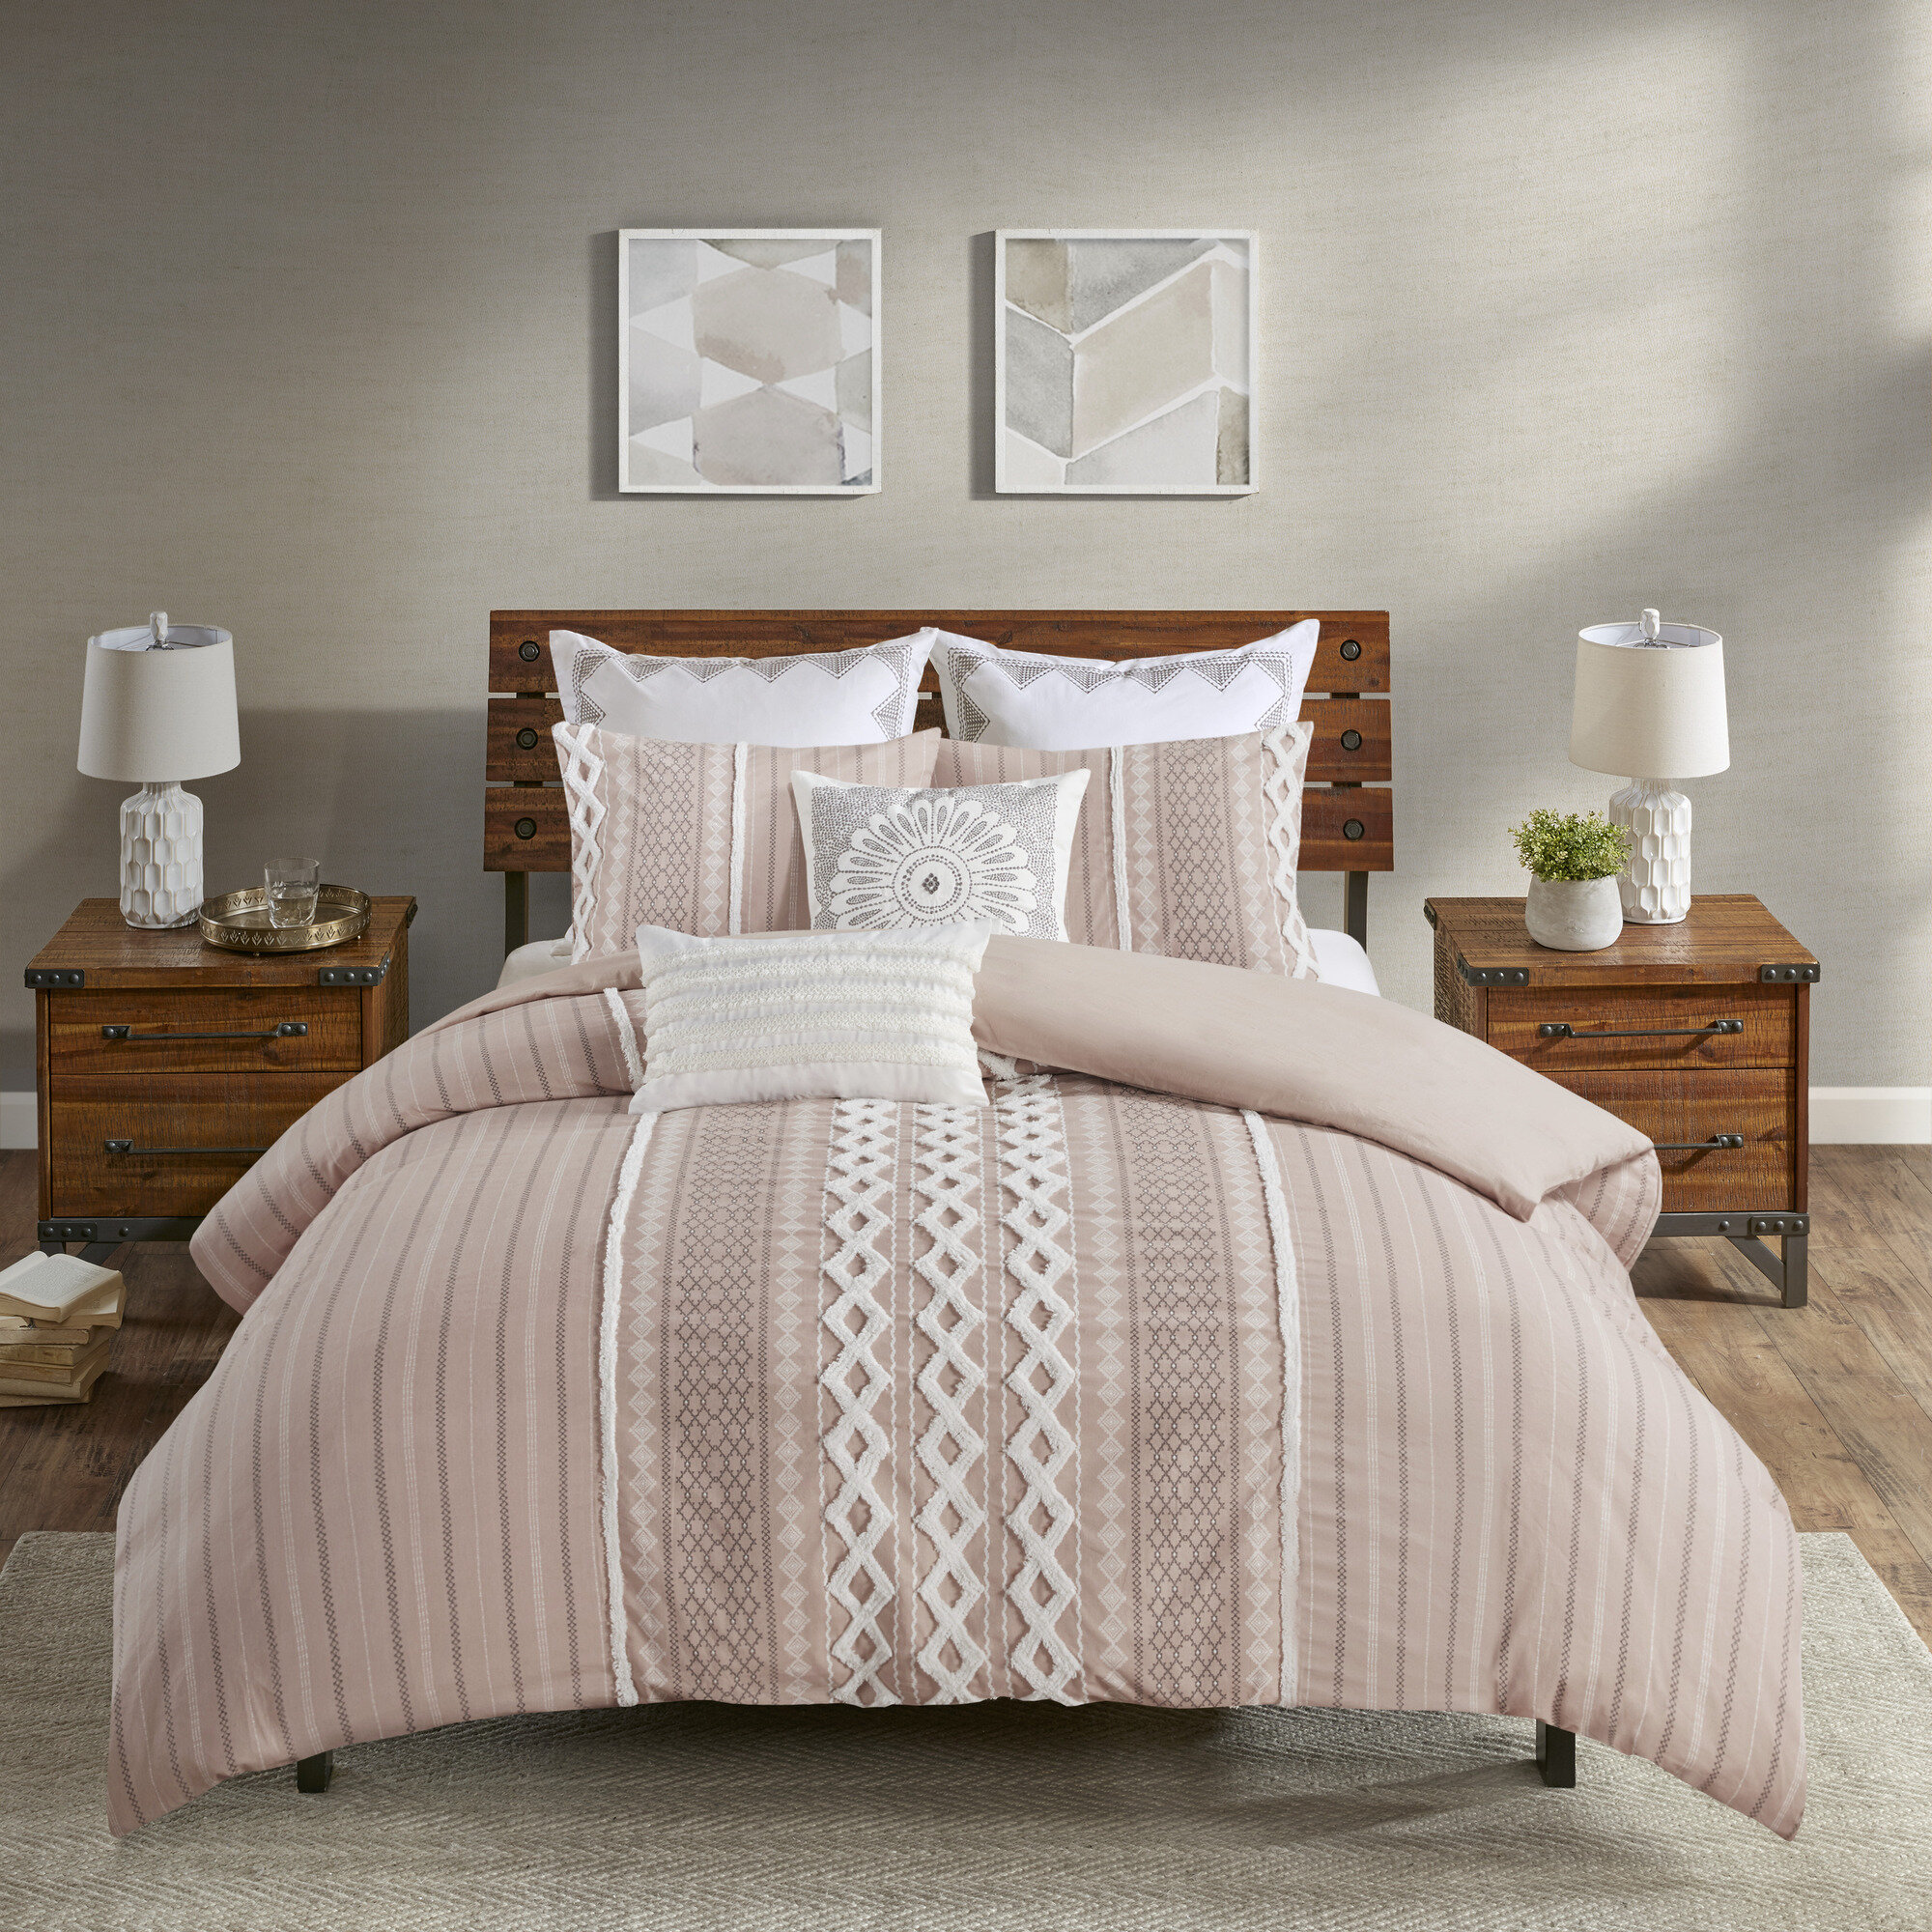 Duvet Pink Bedding Free Shipping Over 35 Wayfair